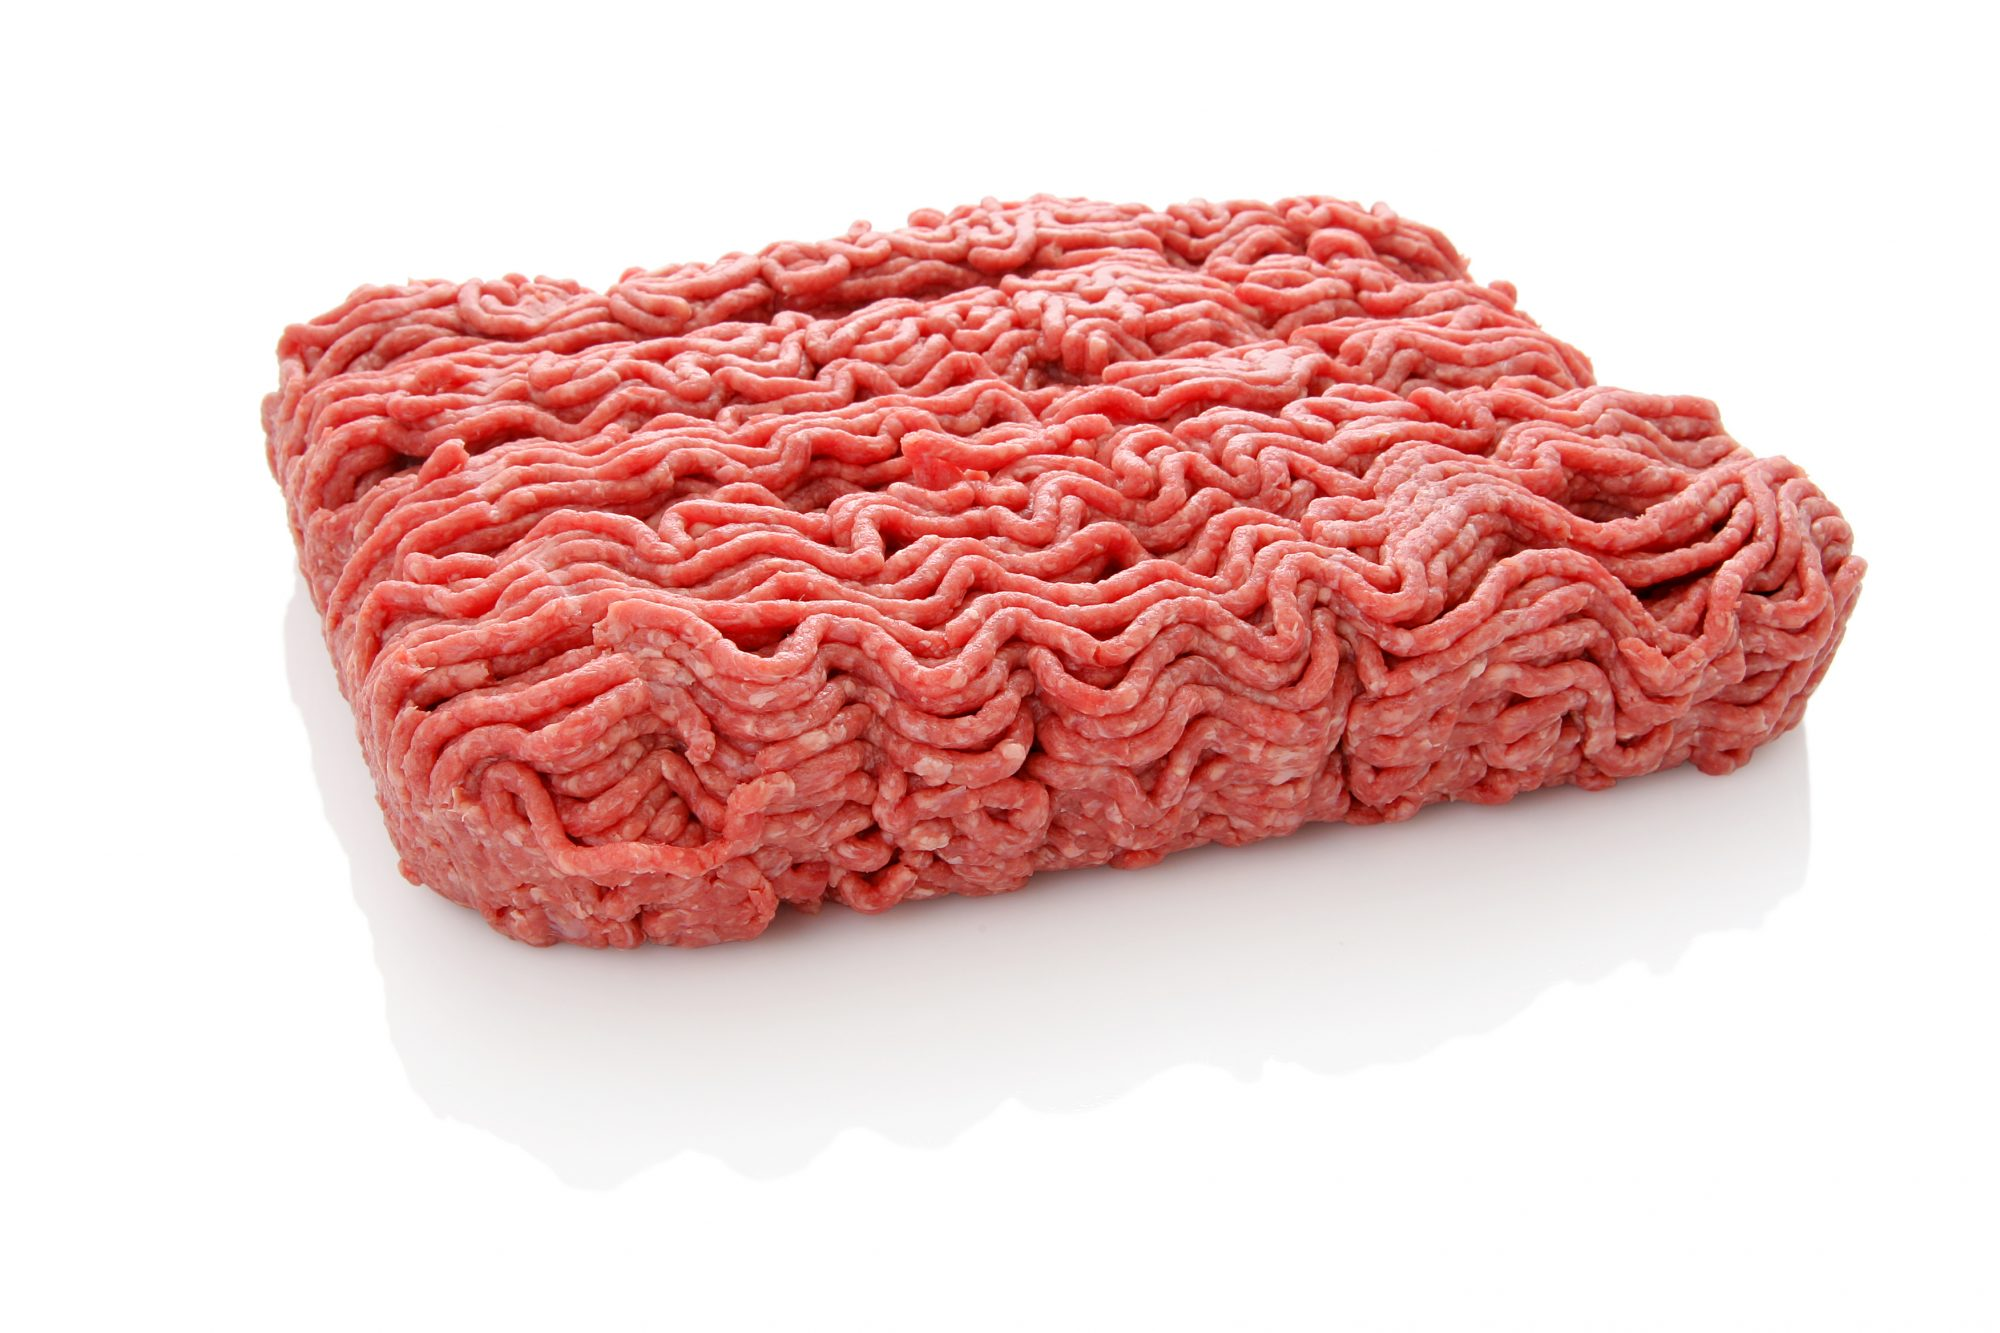 Ground beef on no background Getty 7/15/20